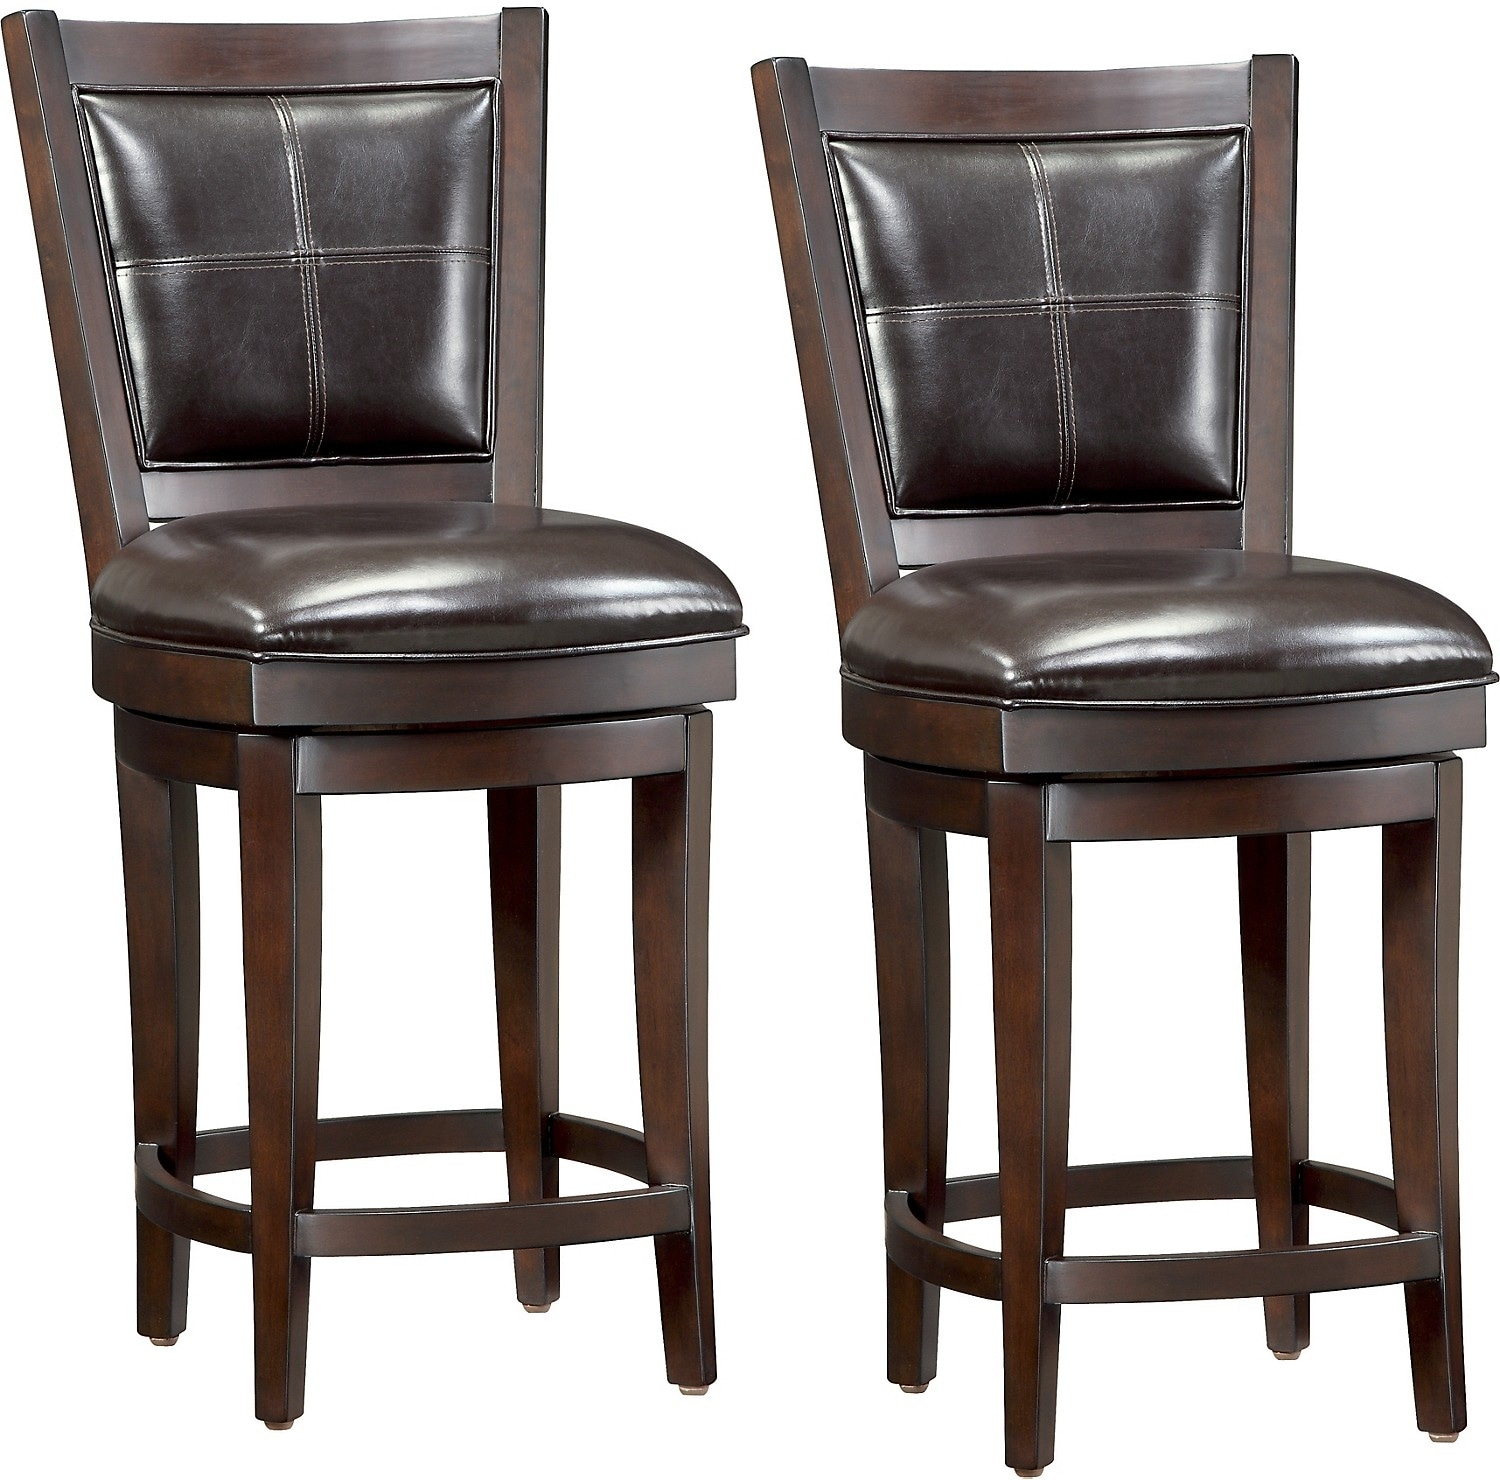 "Dining Room Furniture - Chase 24"" Bar Stools, Set of 2"